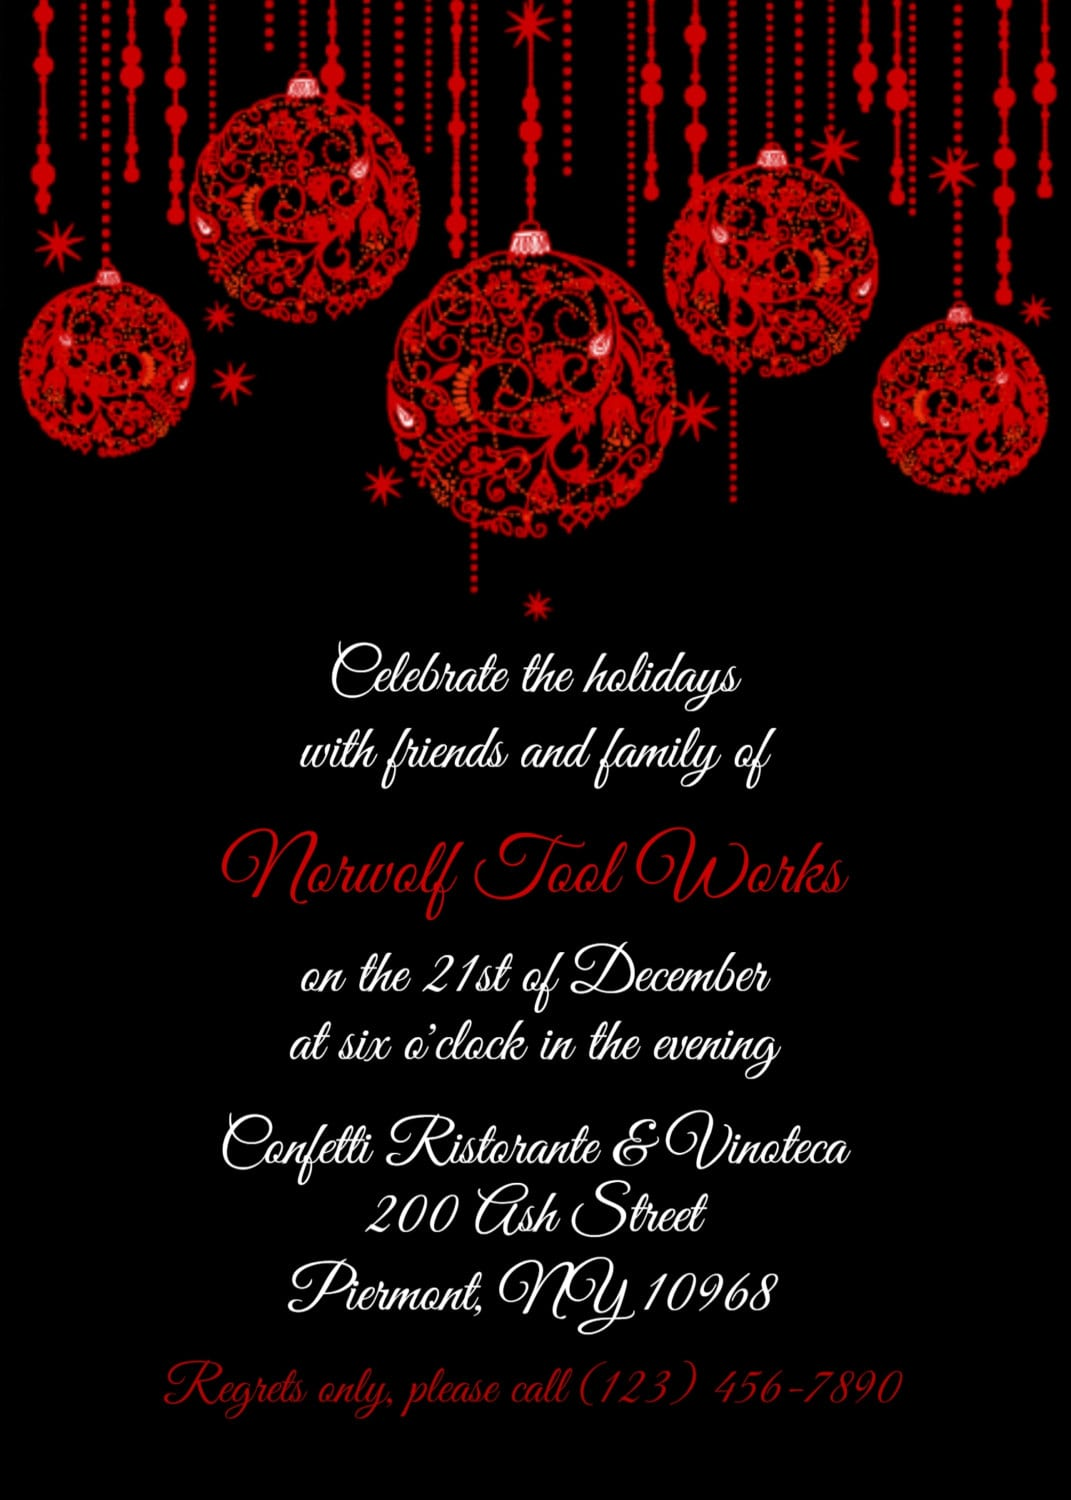 Corporate Christmas Party Invitation Templates